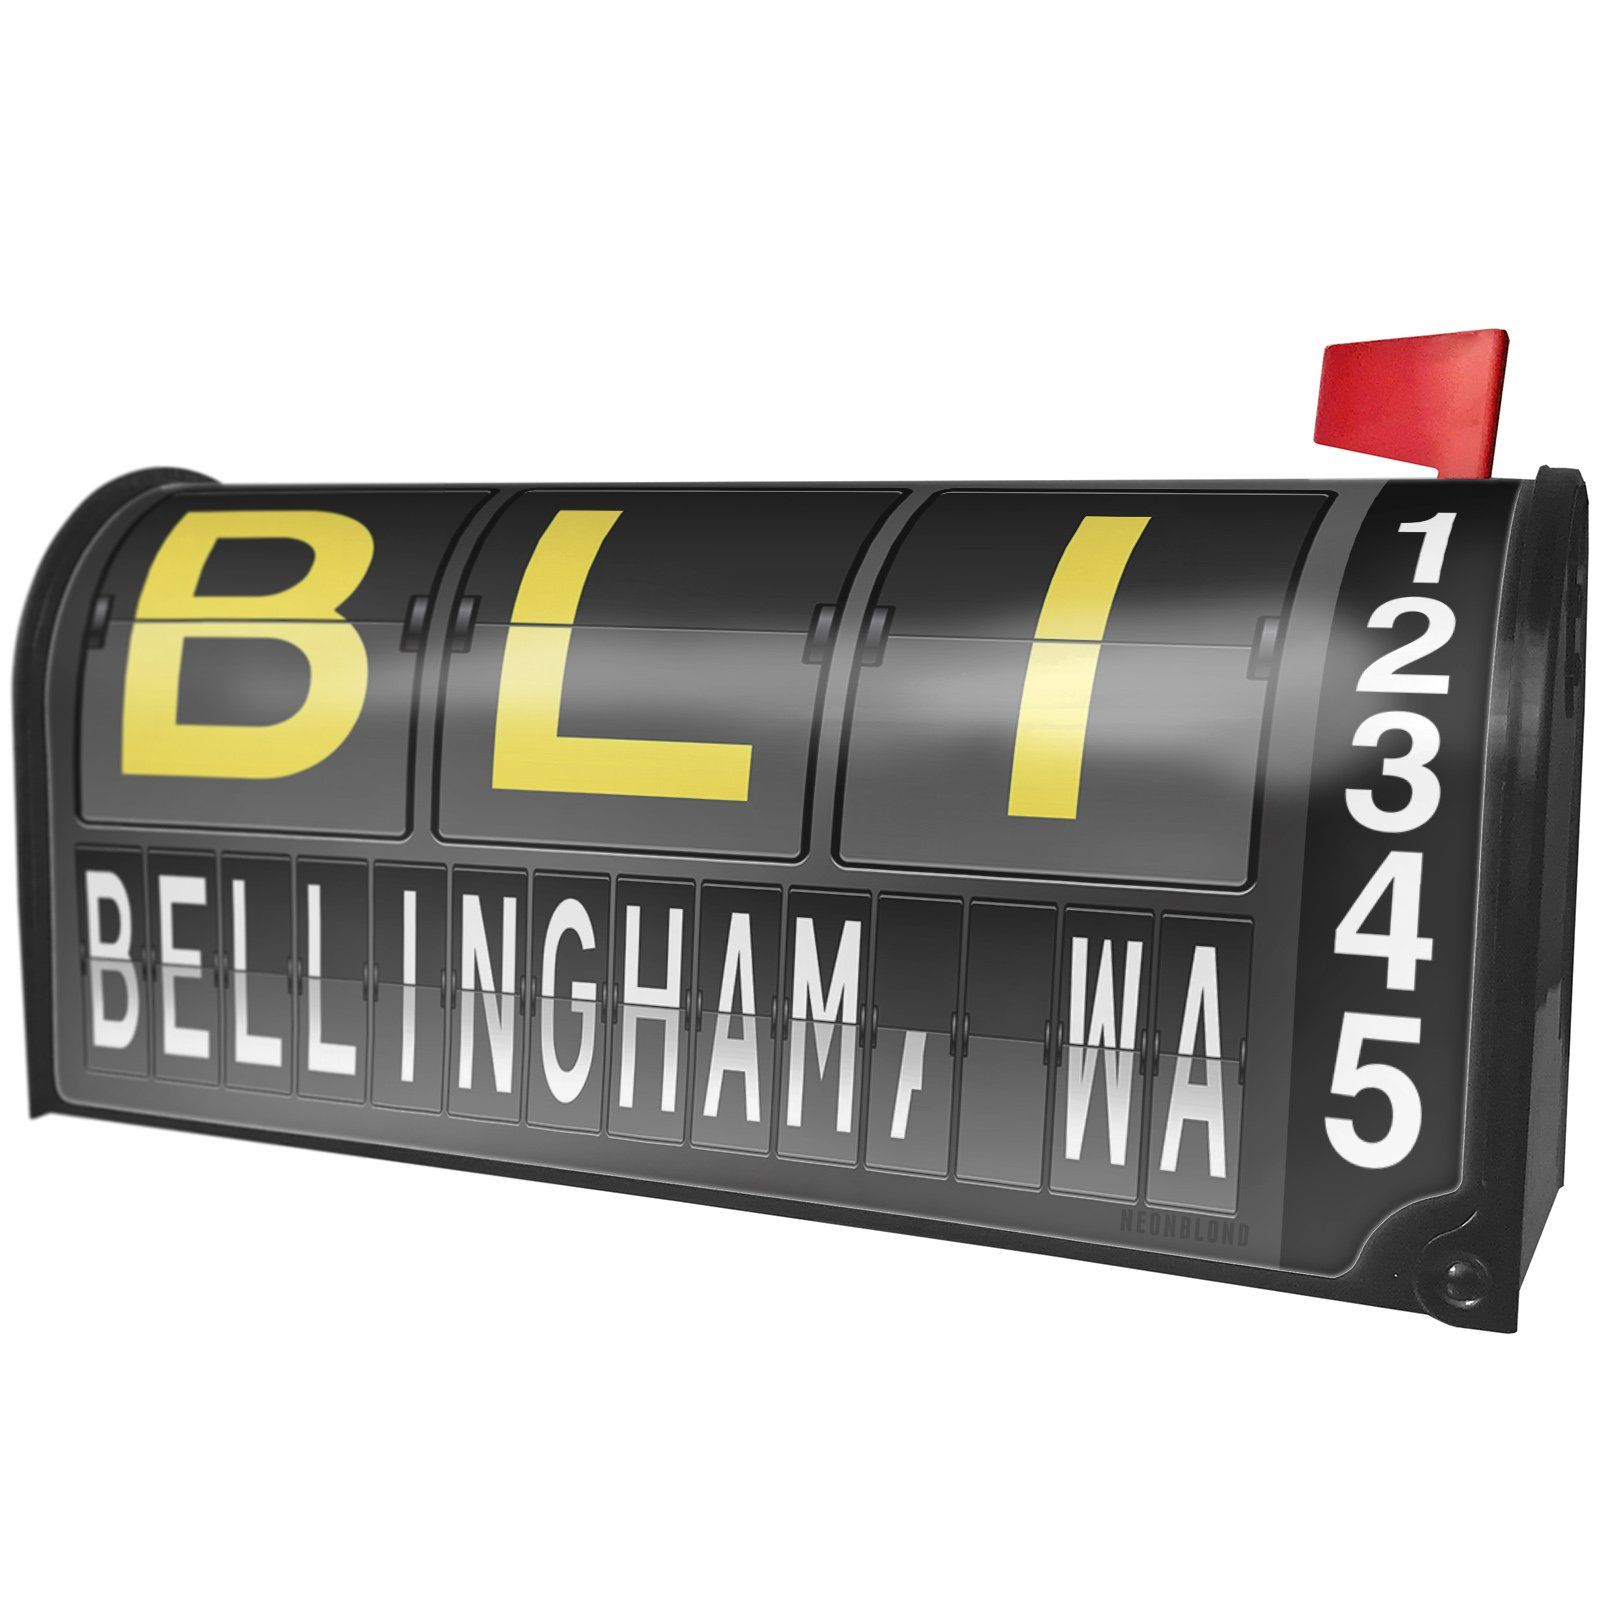 NEONBLOND BLI Airport Code for Bellingham, WA Magnetic Mailbox Cover Custom Numbers